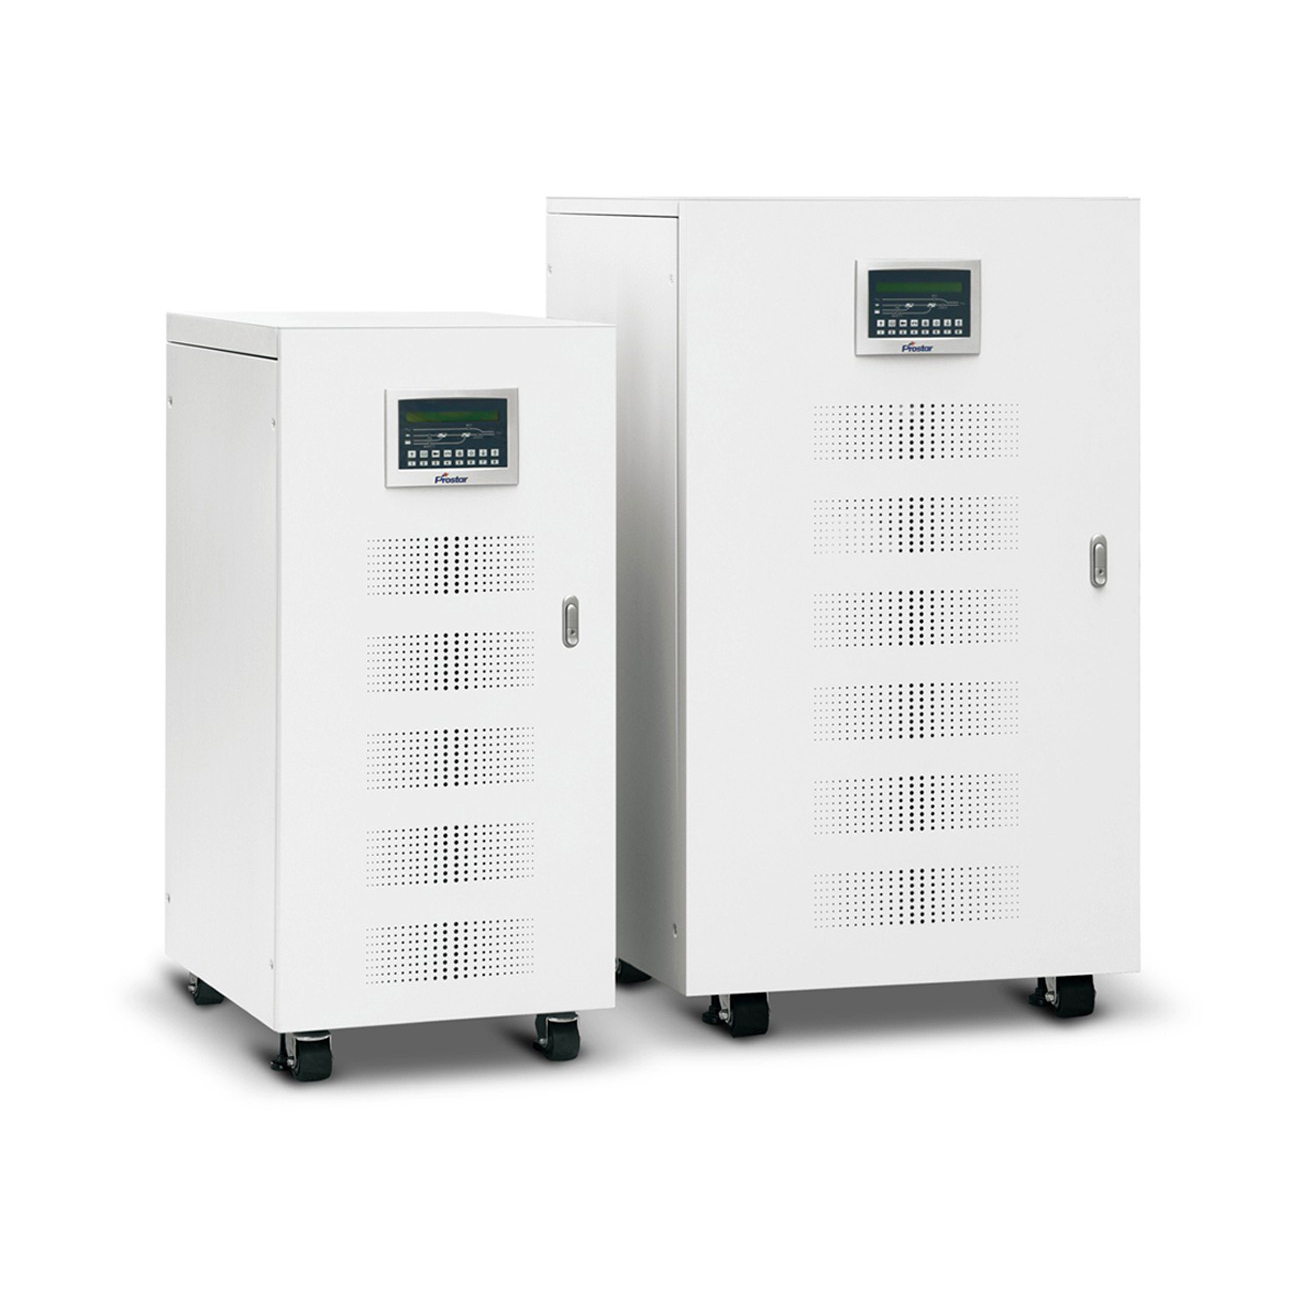 8-100KVA Low Frequency Online UPS (3:1)